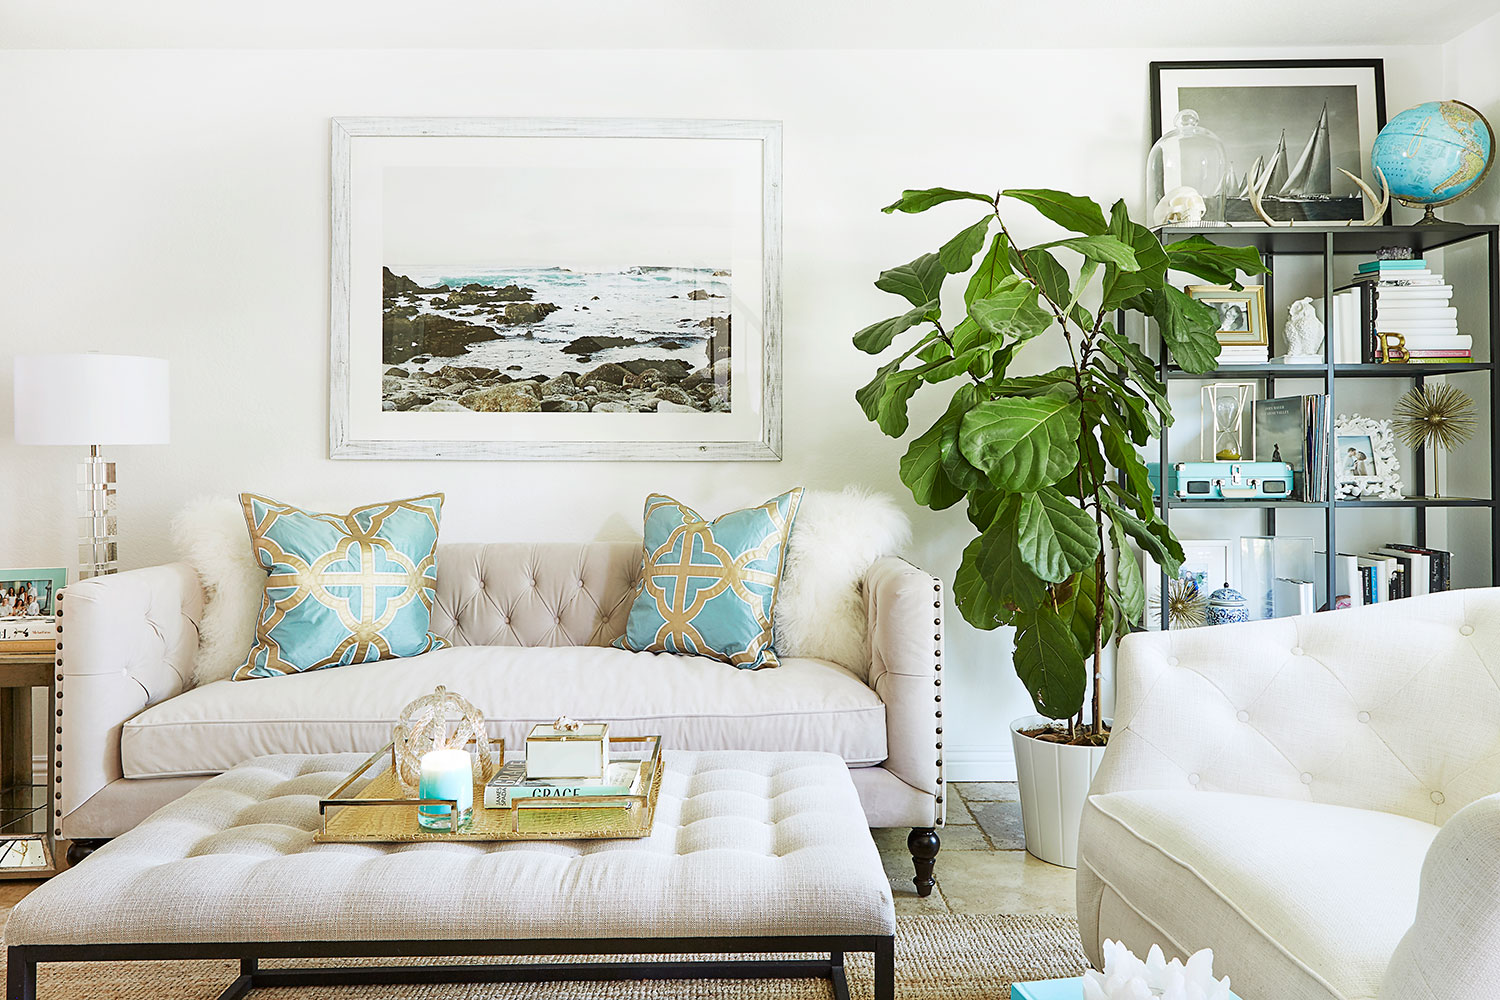 luxe transformation for less with gallerie rue zgallerie accent table starting the sleek roberto sofa kathleen has transformed her living room pieces gold accents such scoppio